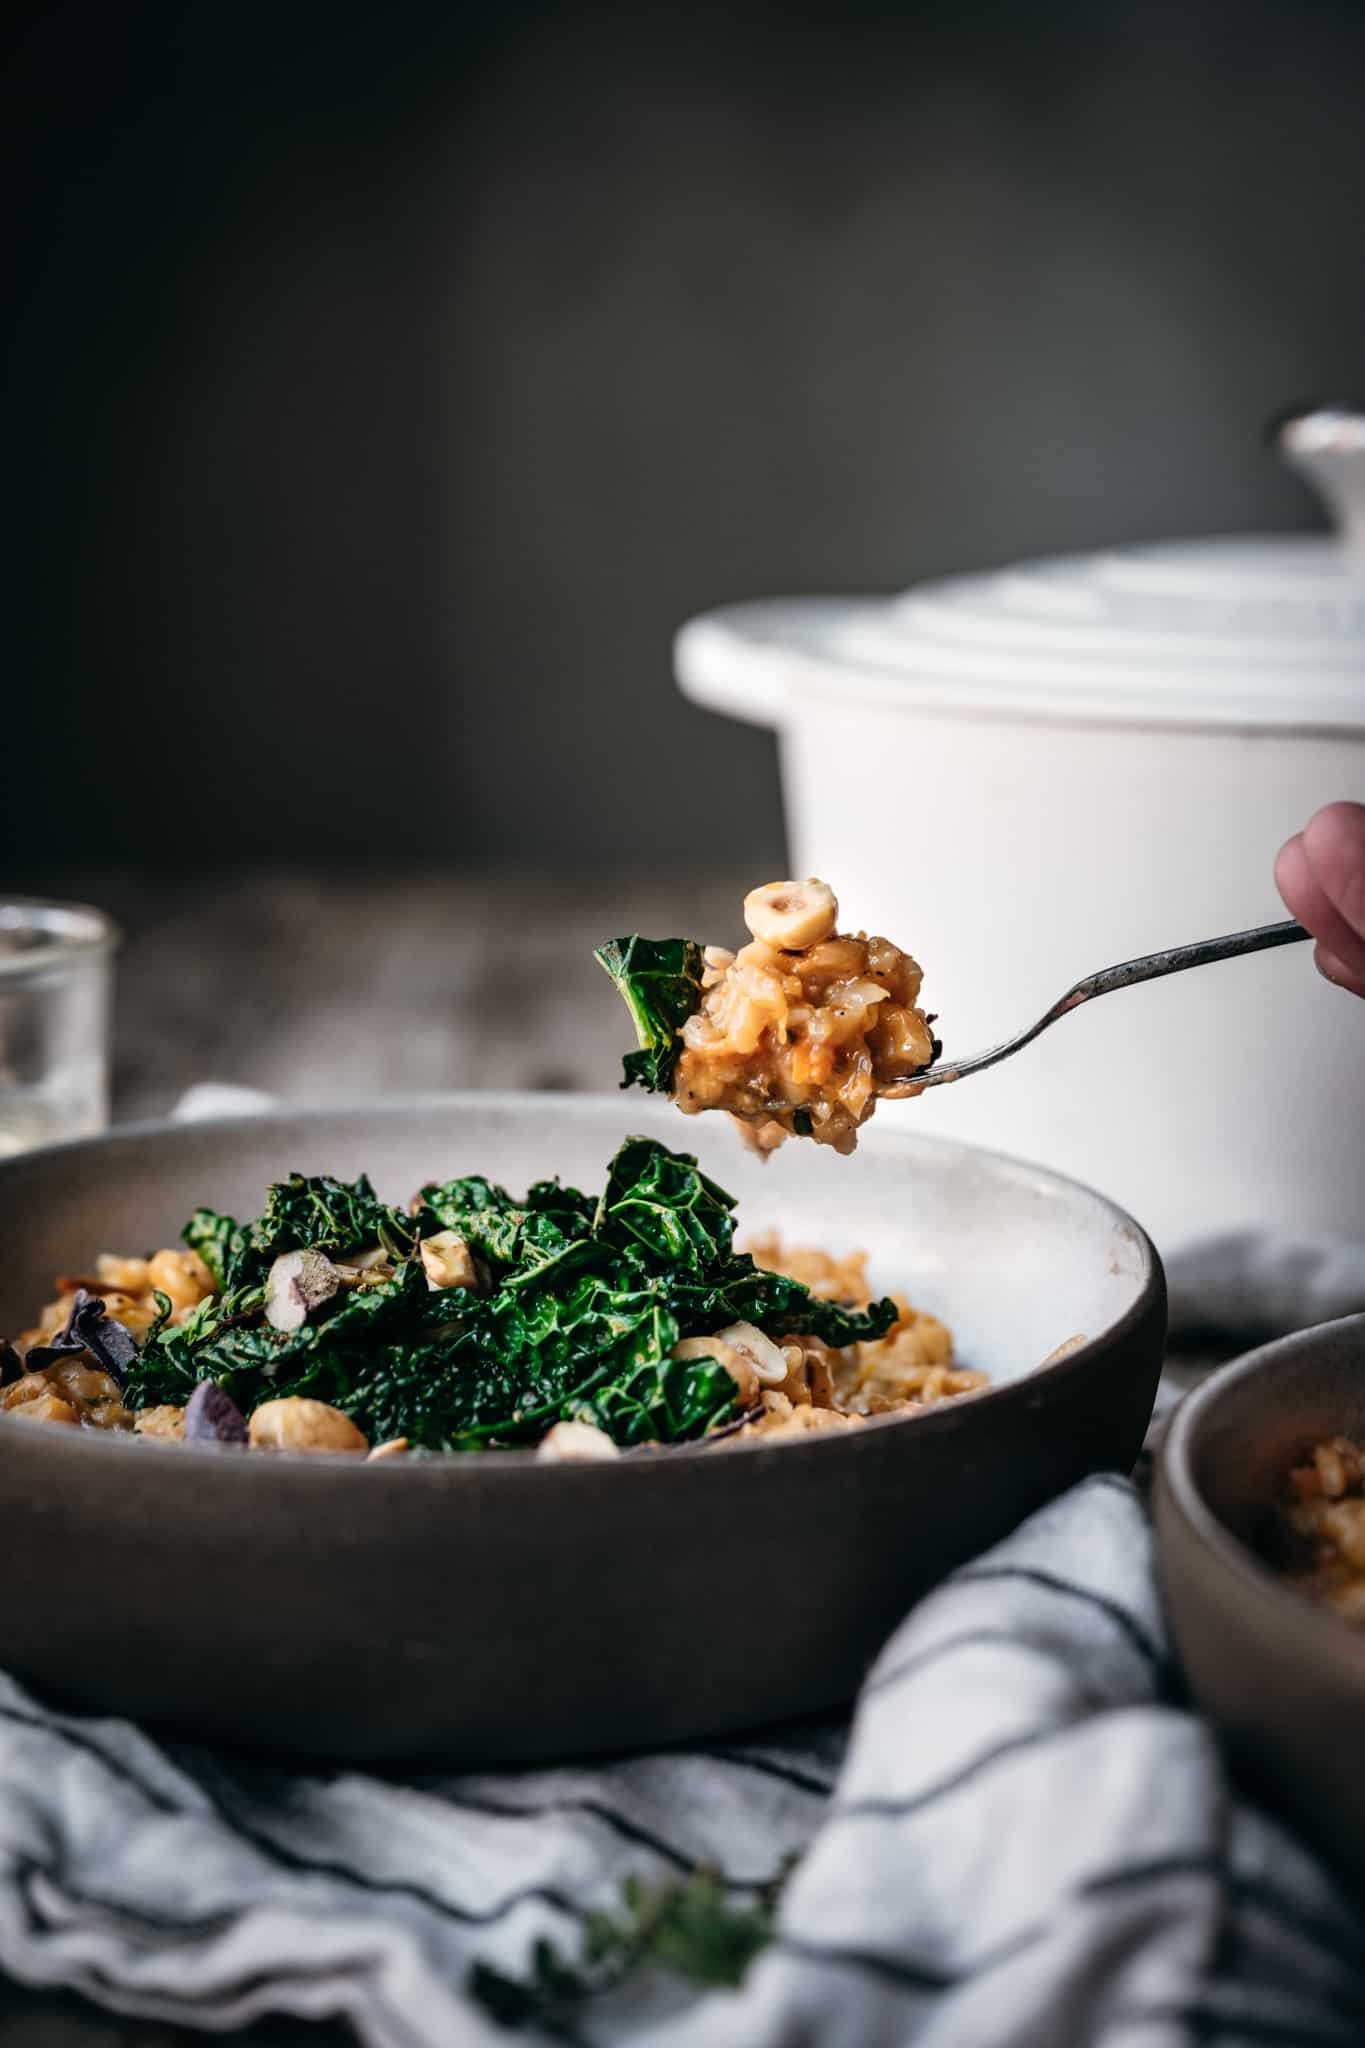 side view of forkful of vegan sweet potato risotto with kale and hazelnuts